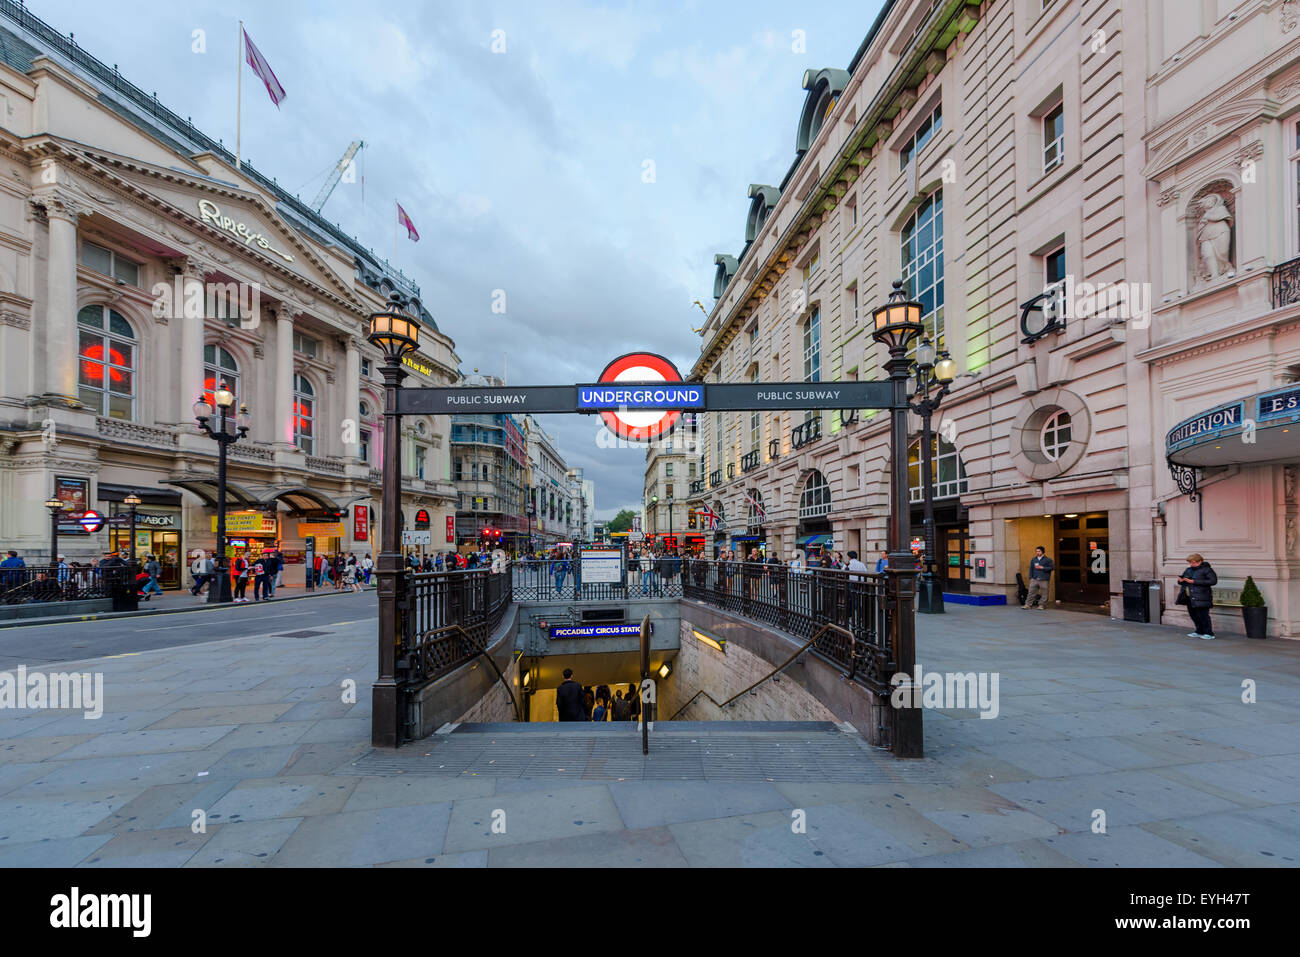 Une station de métro de Londres le 28 juillet 2015 à Piccadilly Circus à Londres, en Angleterre. Photo Stock